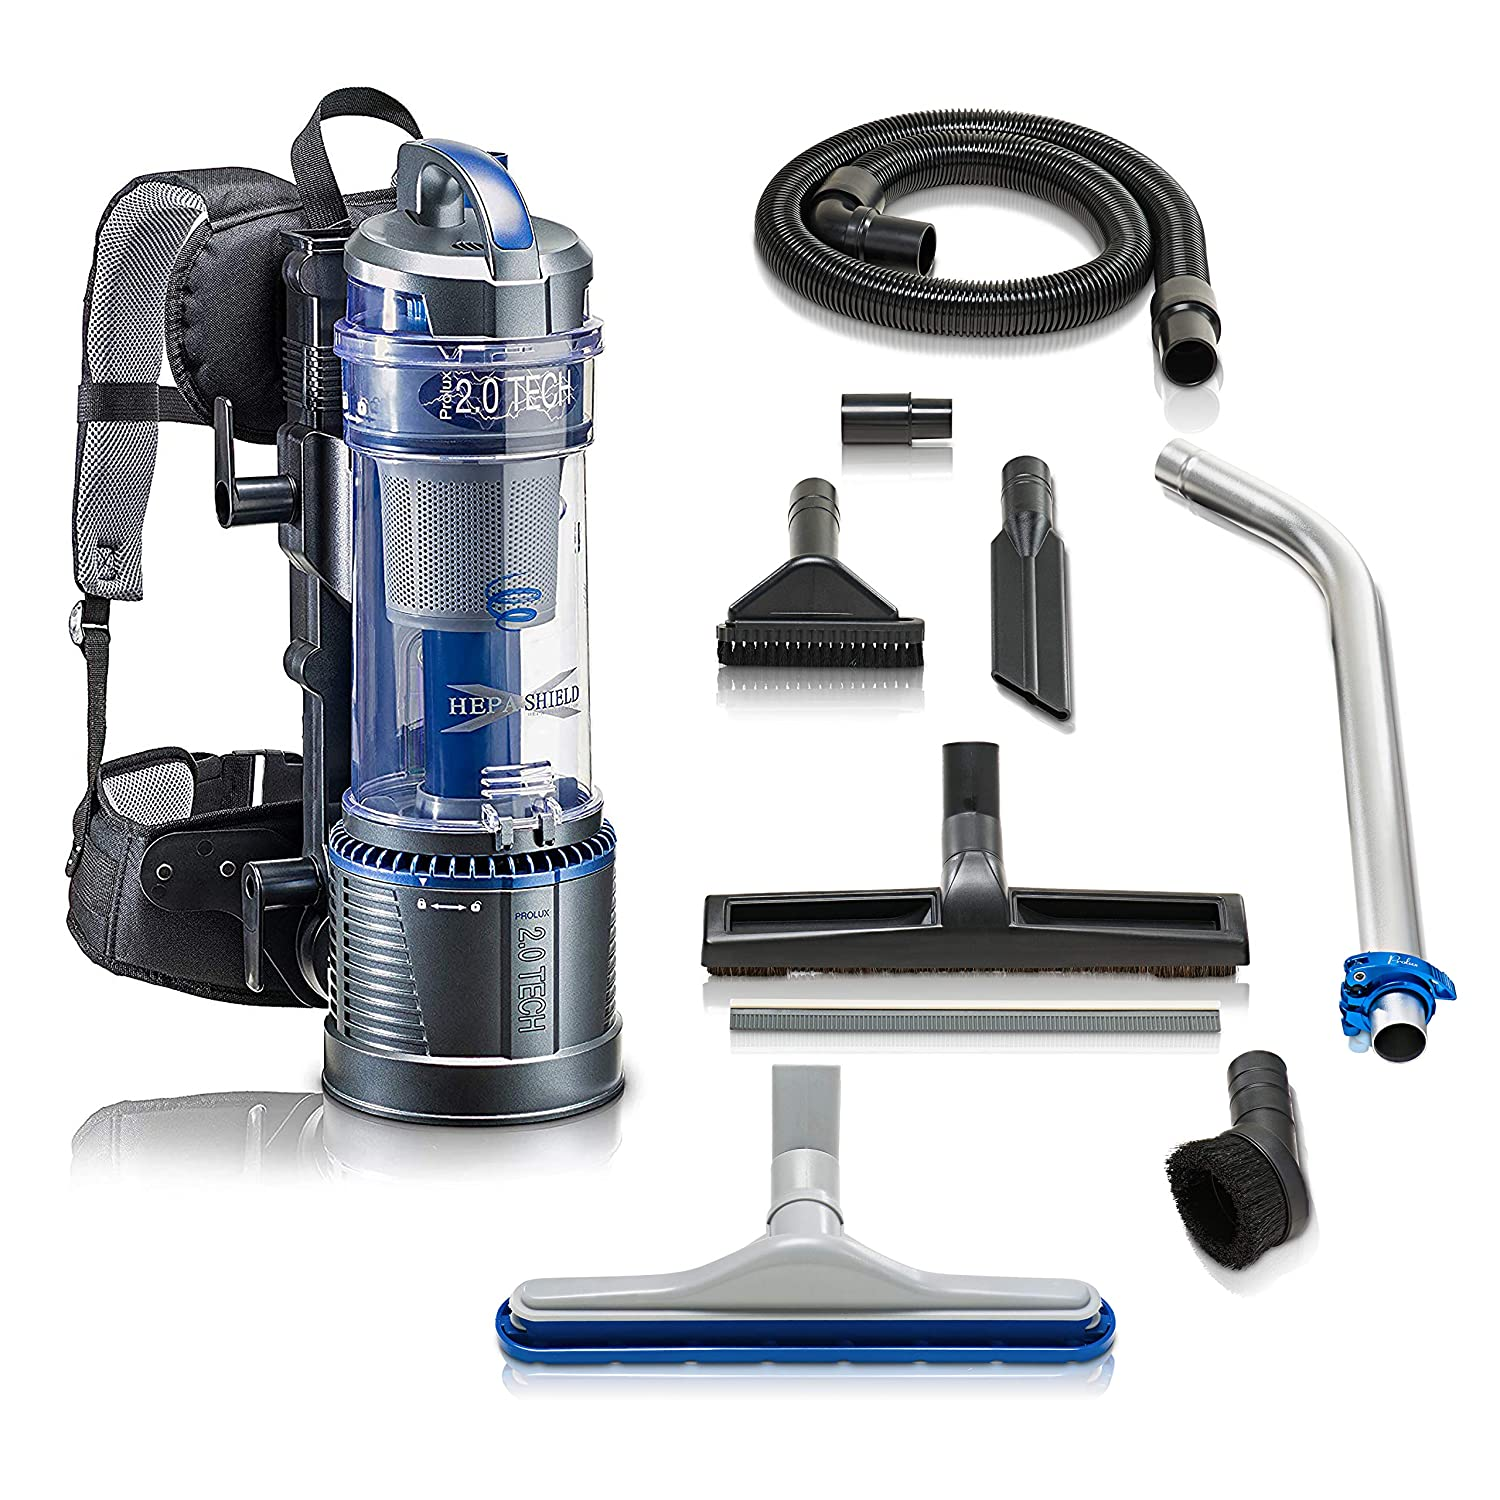 2019 Prolux 2.0 Bagless Backpack Vacuum with Deluxe 1 1/2 inch Tool Kit